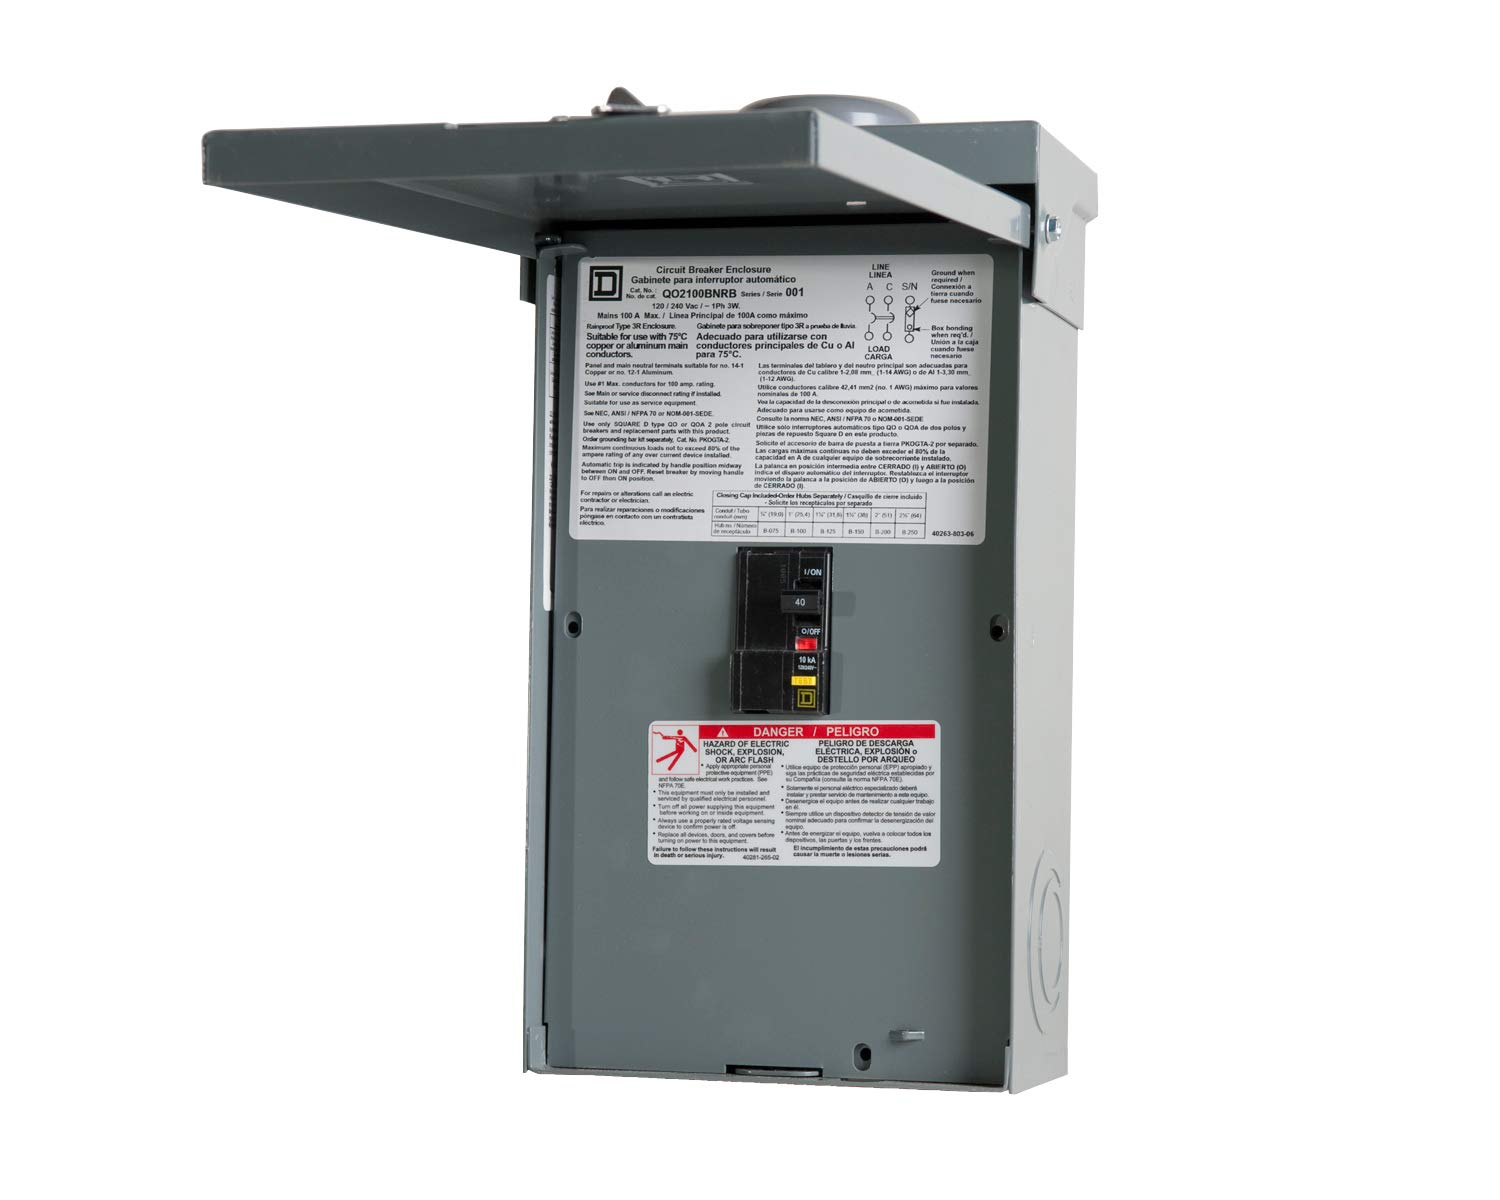 Northern Lights Group Balboa Gfci 40 Breaker And Box Spaguts Spa To 220v Wiring Diagrams Circuit Breakers Garden Outdoor